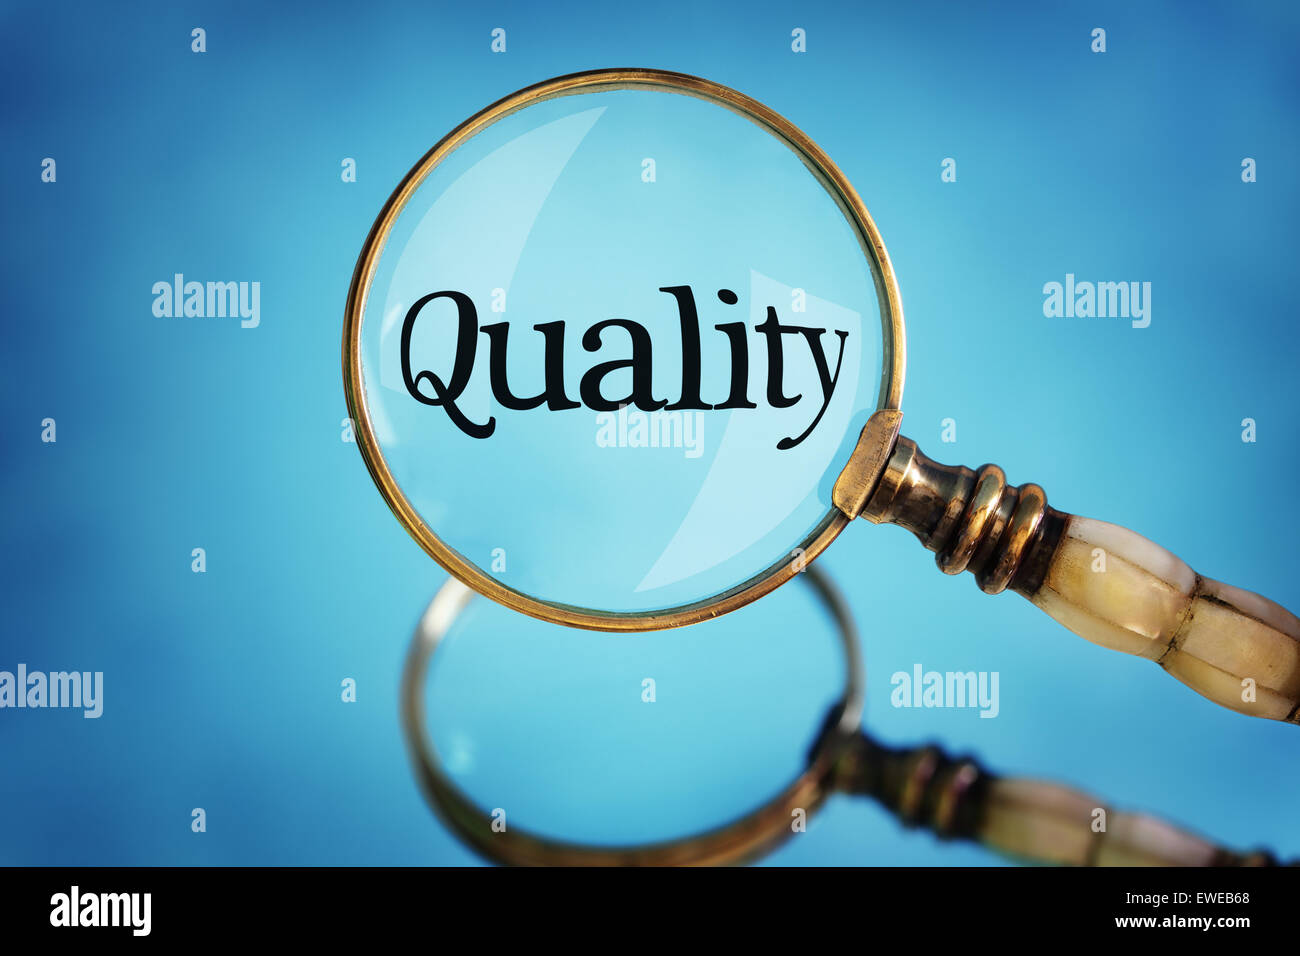 Magnifying glass focus on word quality - Stock Image